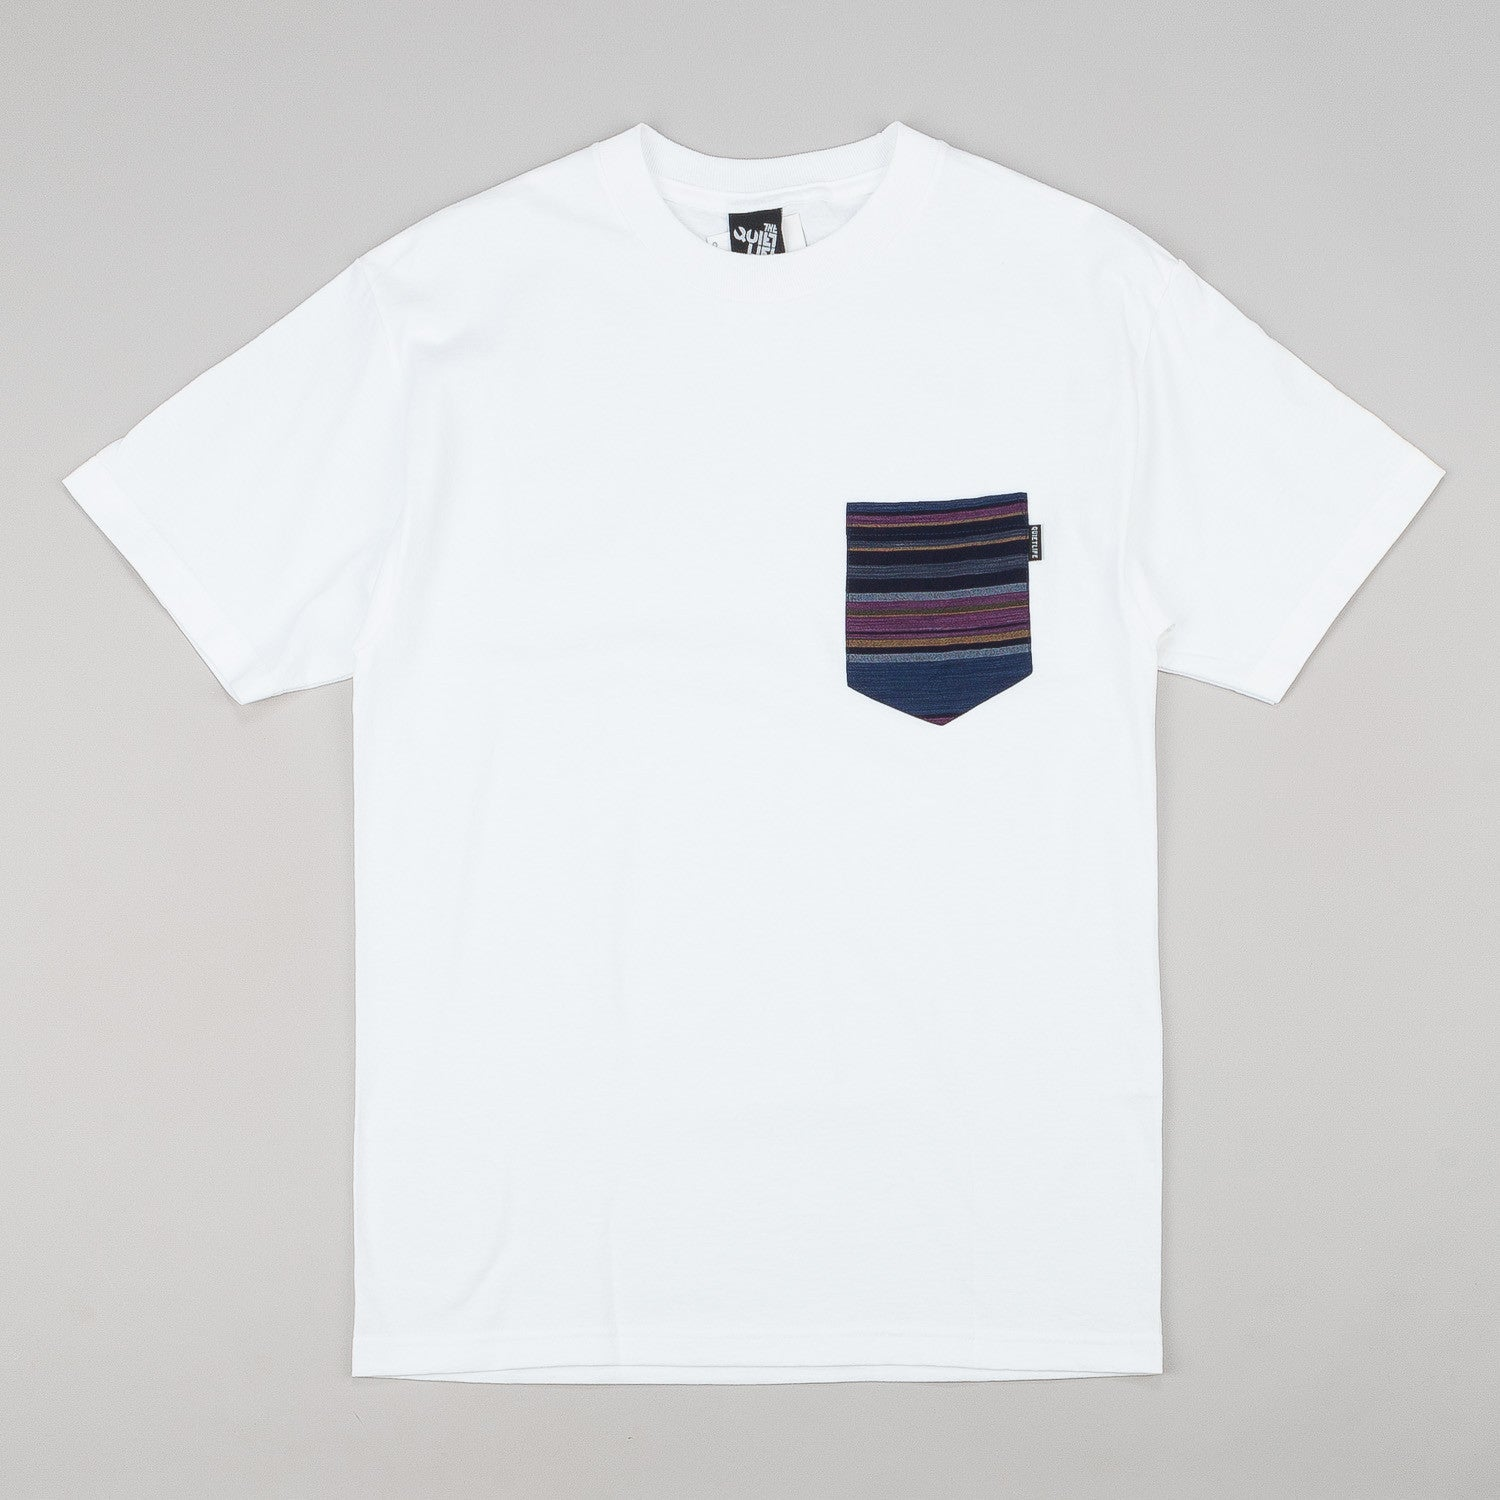 The Quiet Life Flax Linen Pocket T-Shirt - White